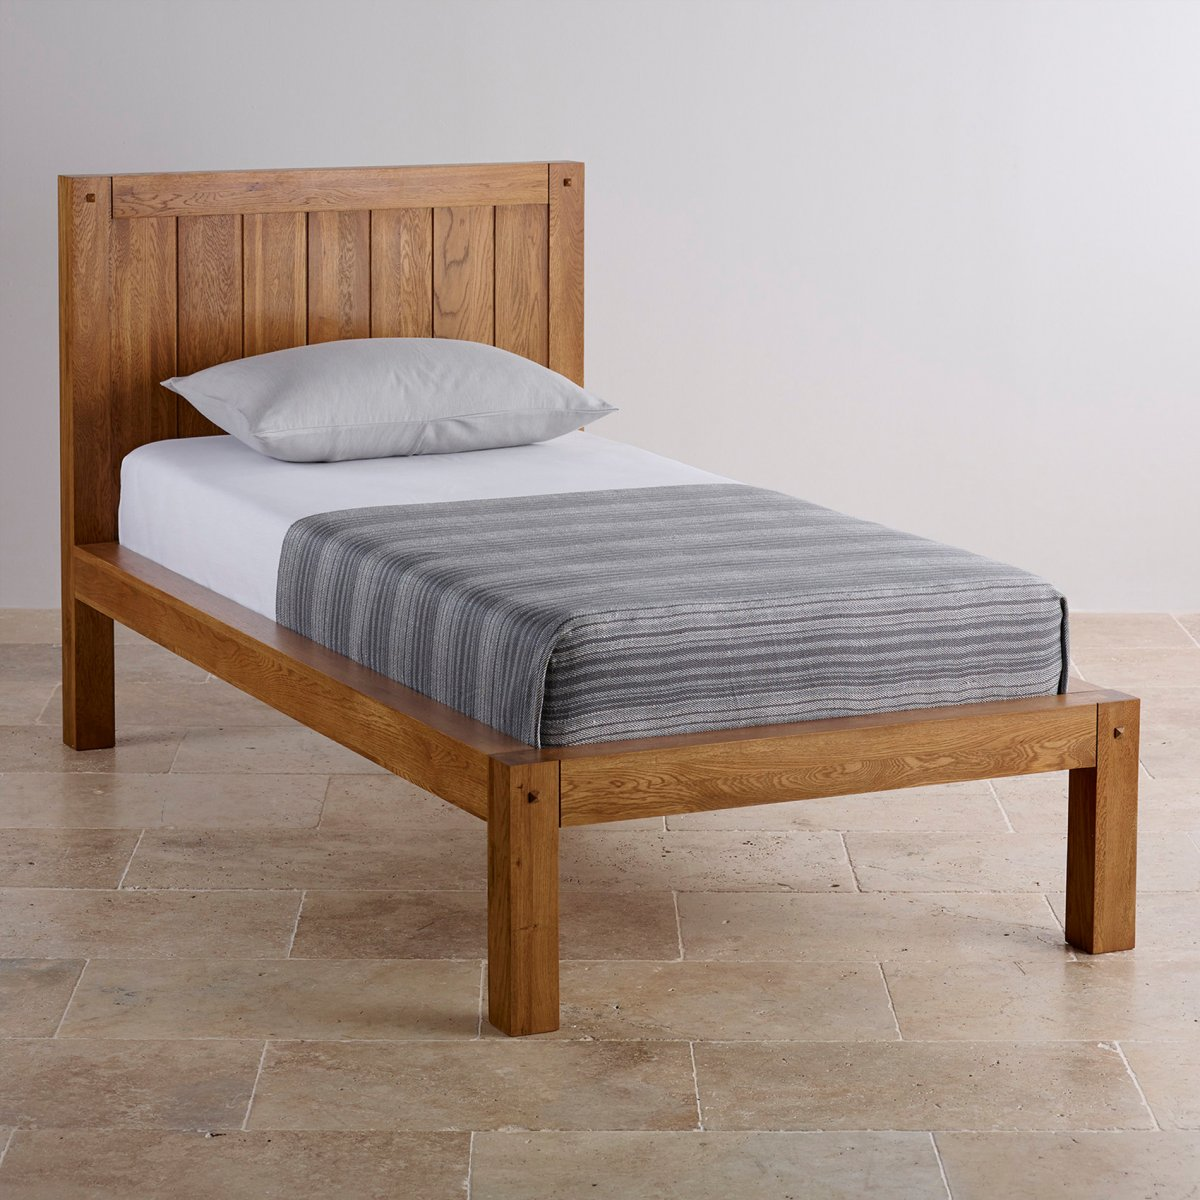 Quercus single bed rustic solid oak oak furniture land - Images of bed design ...